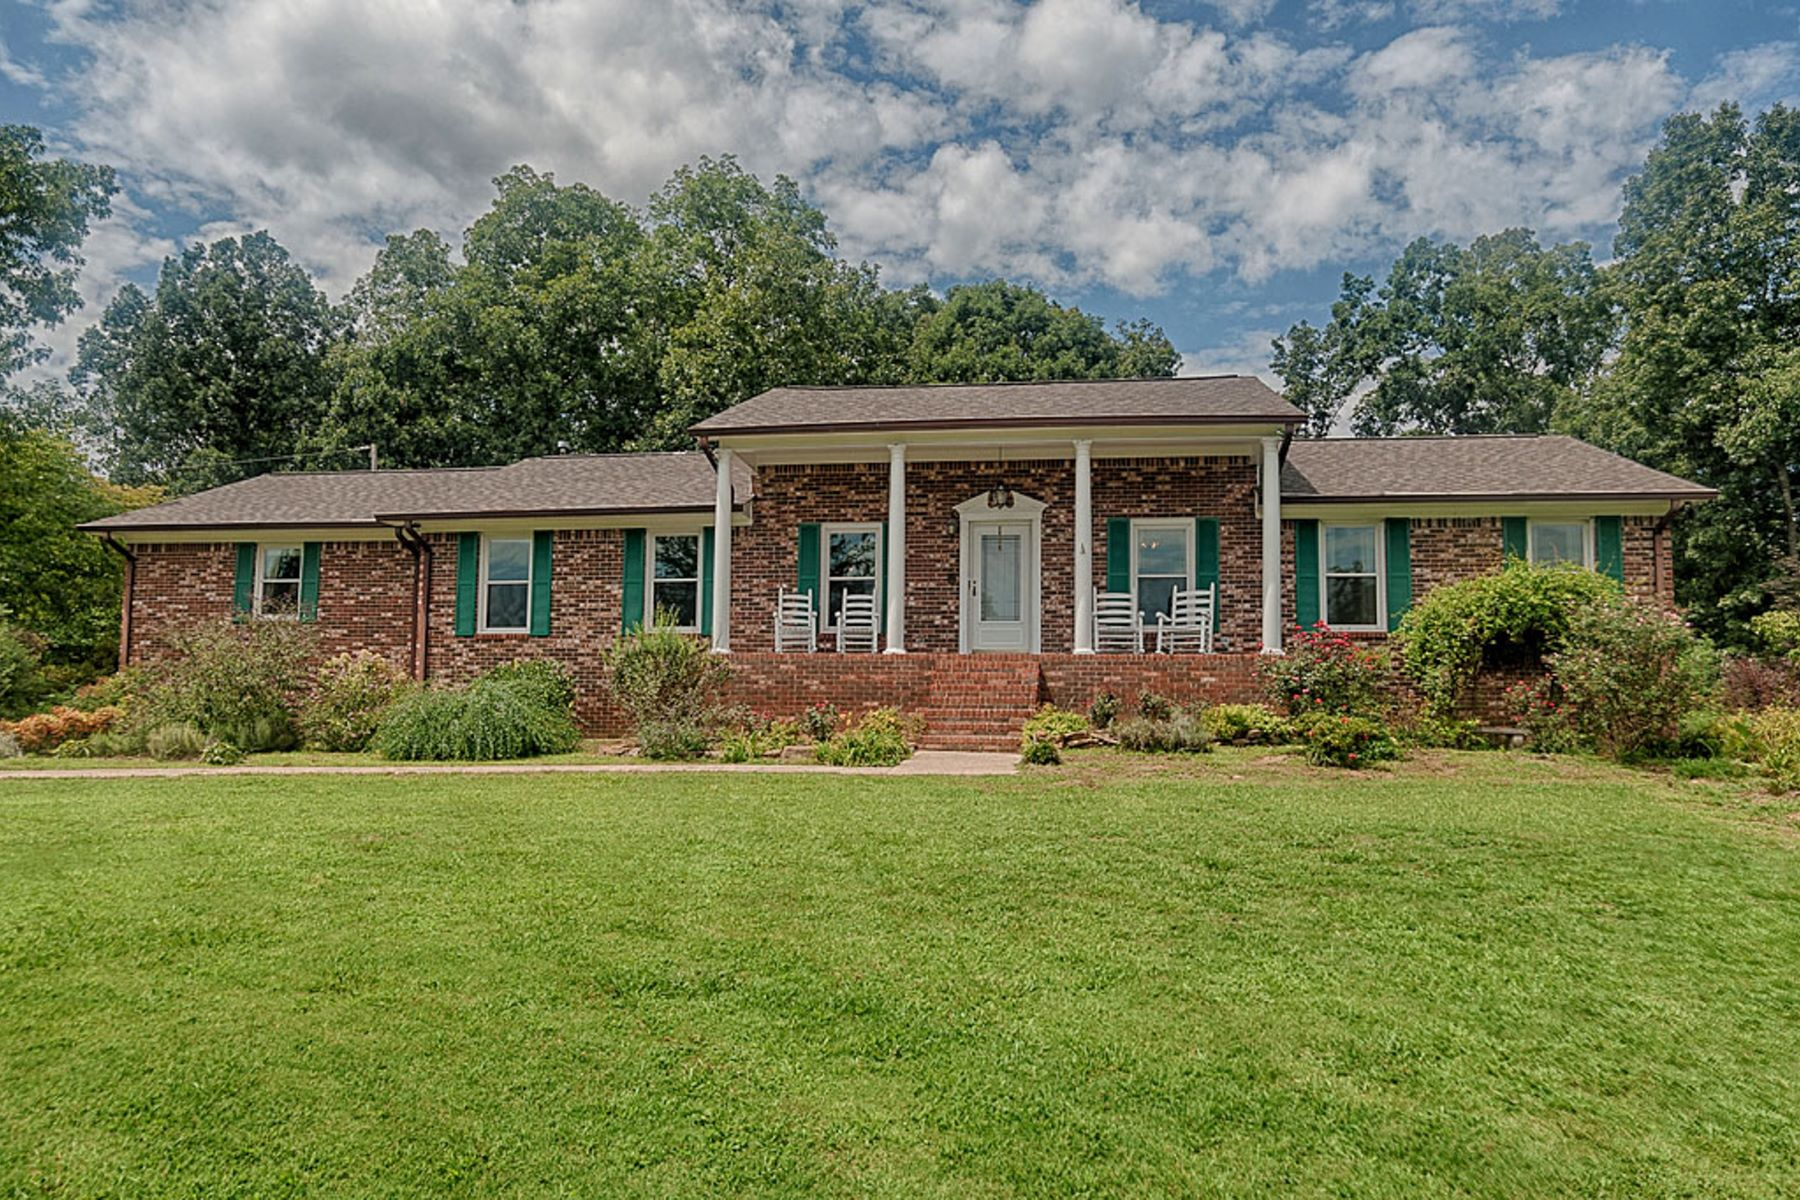 Single Family Home for Active at 7322 ALABAMA HIGHWAY 79 S Guntersville, Alabama 35976 United States